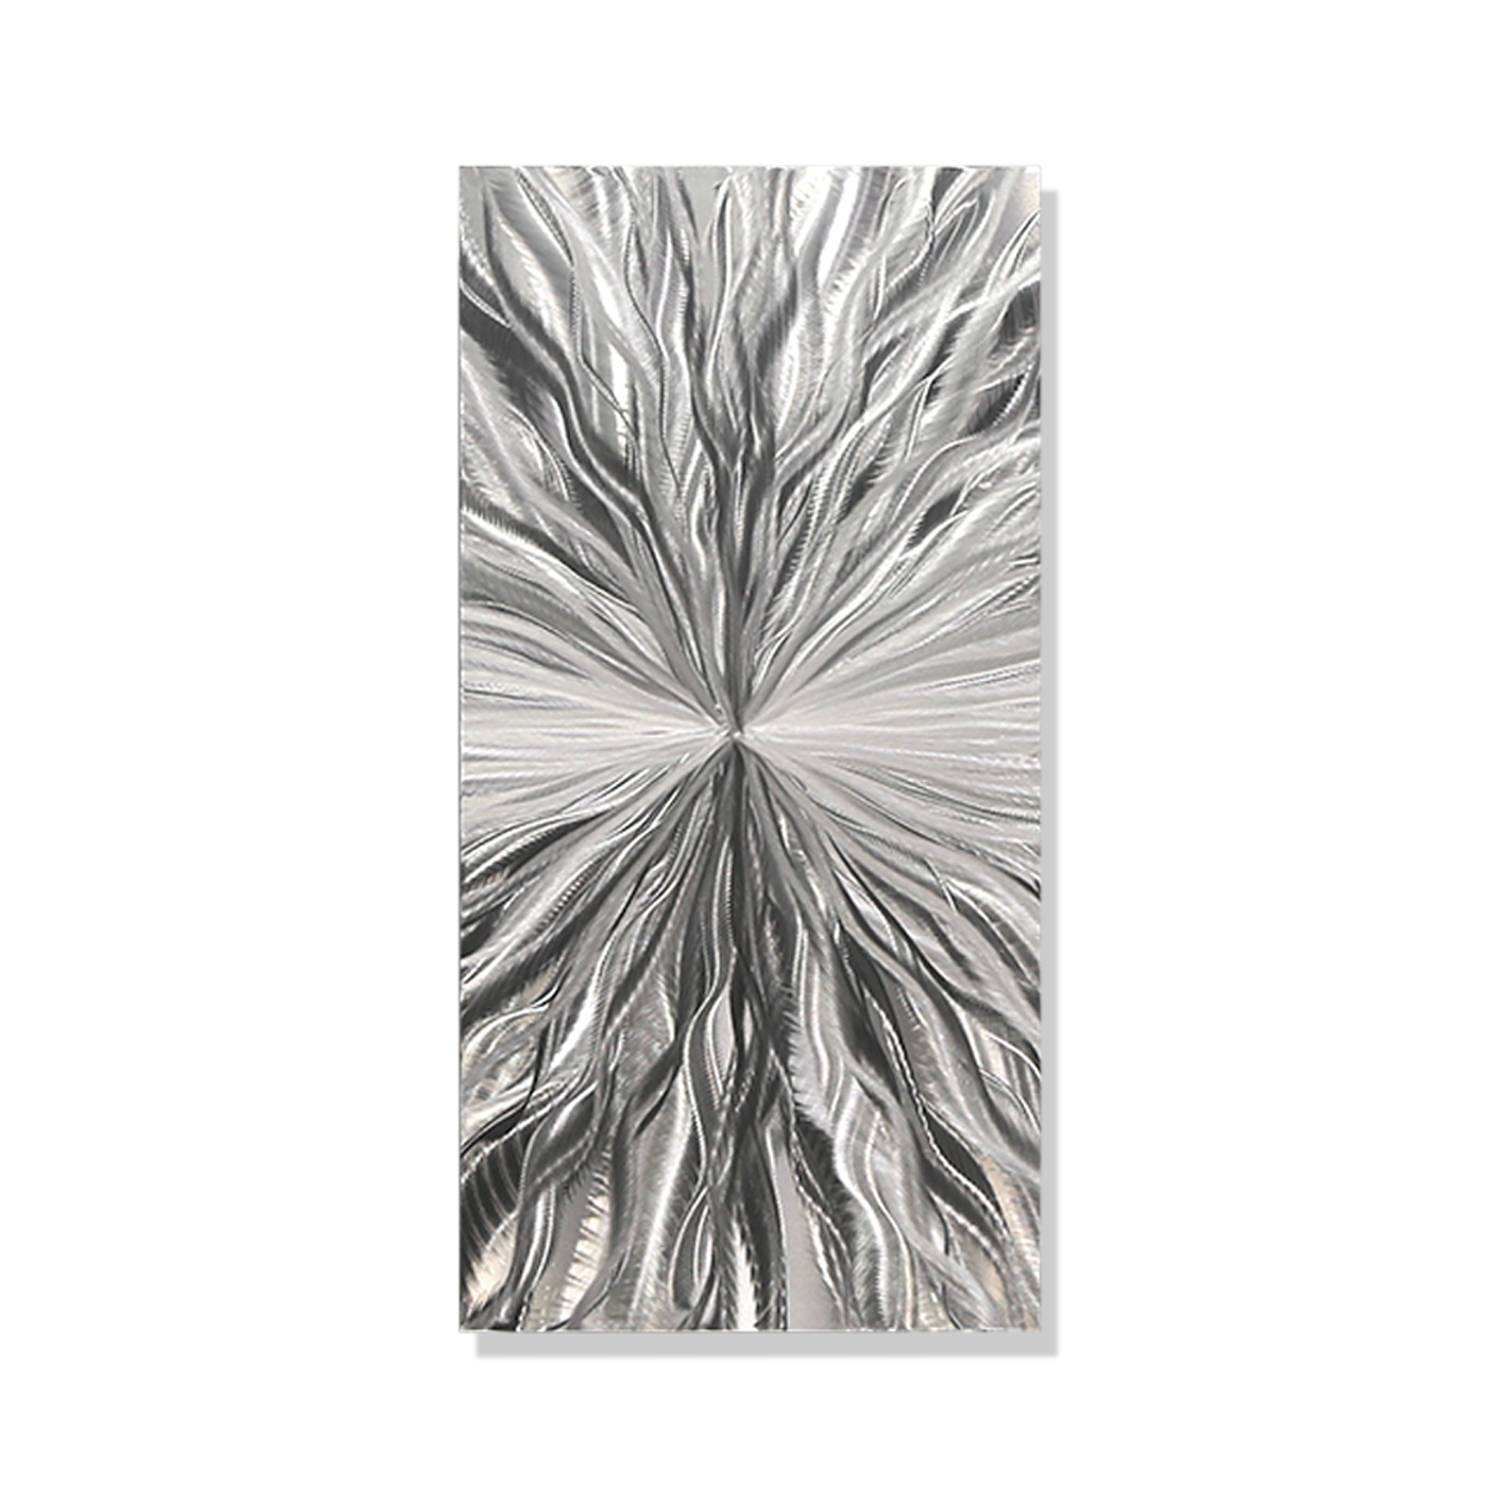 Vitality Solo – Silver Metal Wall Art – Single Panel Wall Décor Regarding Most Up To Date Silver Metal Wall Art (View 19 of 20)